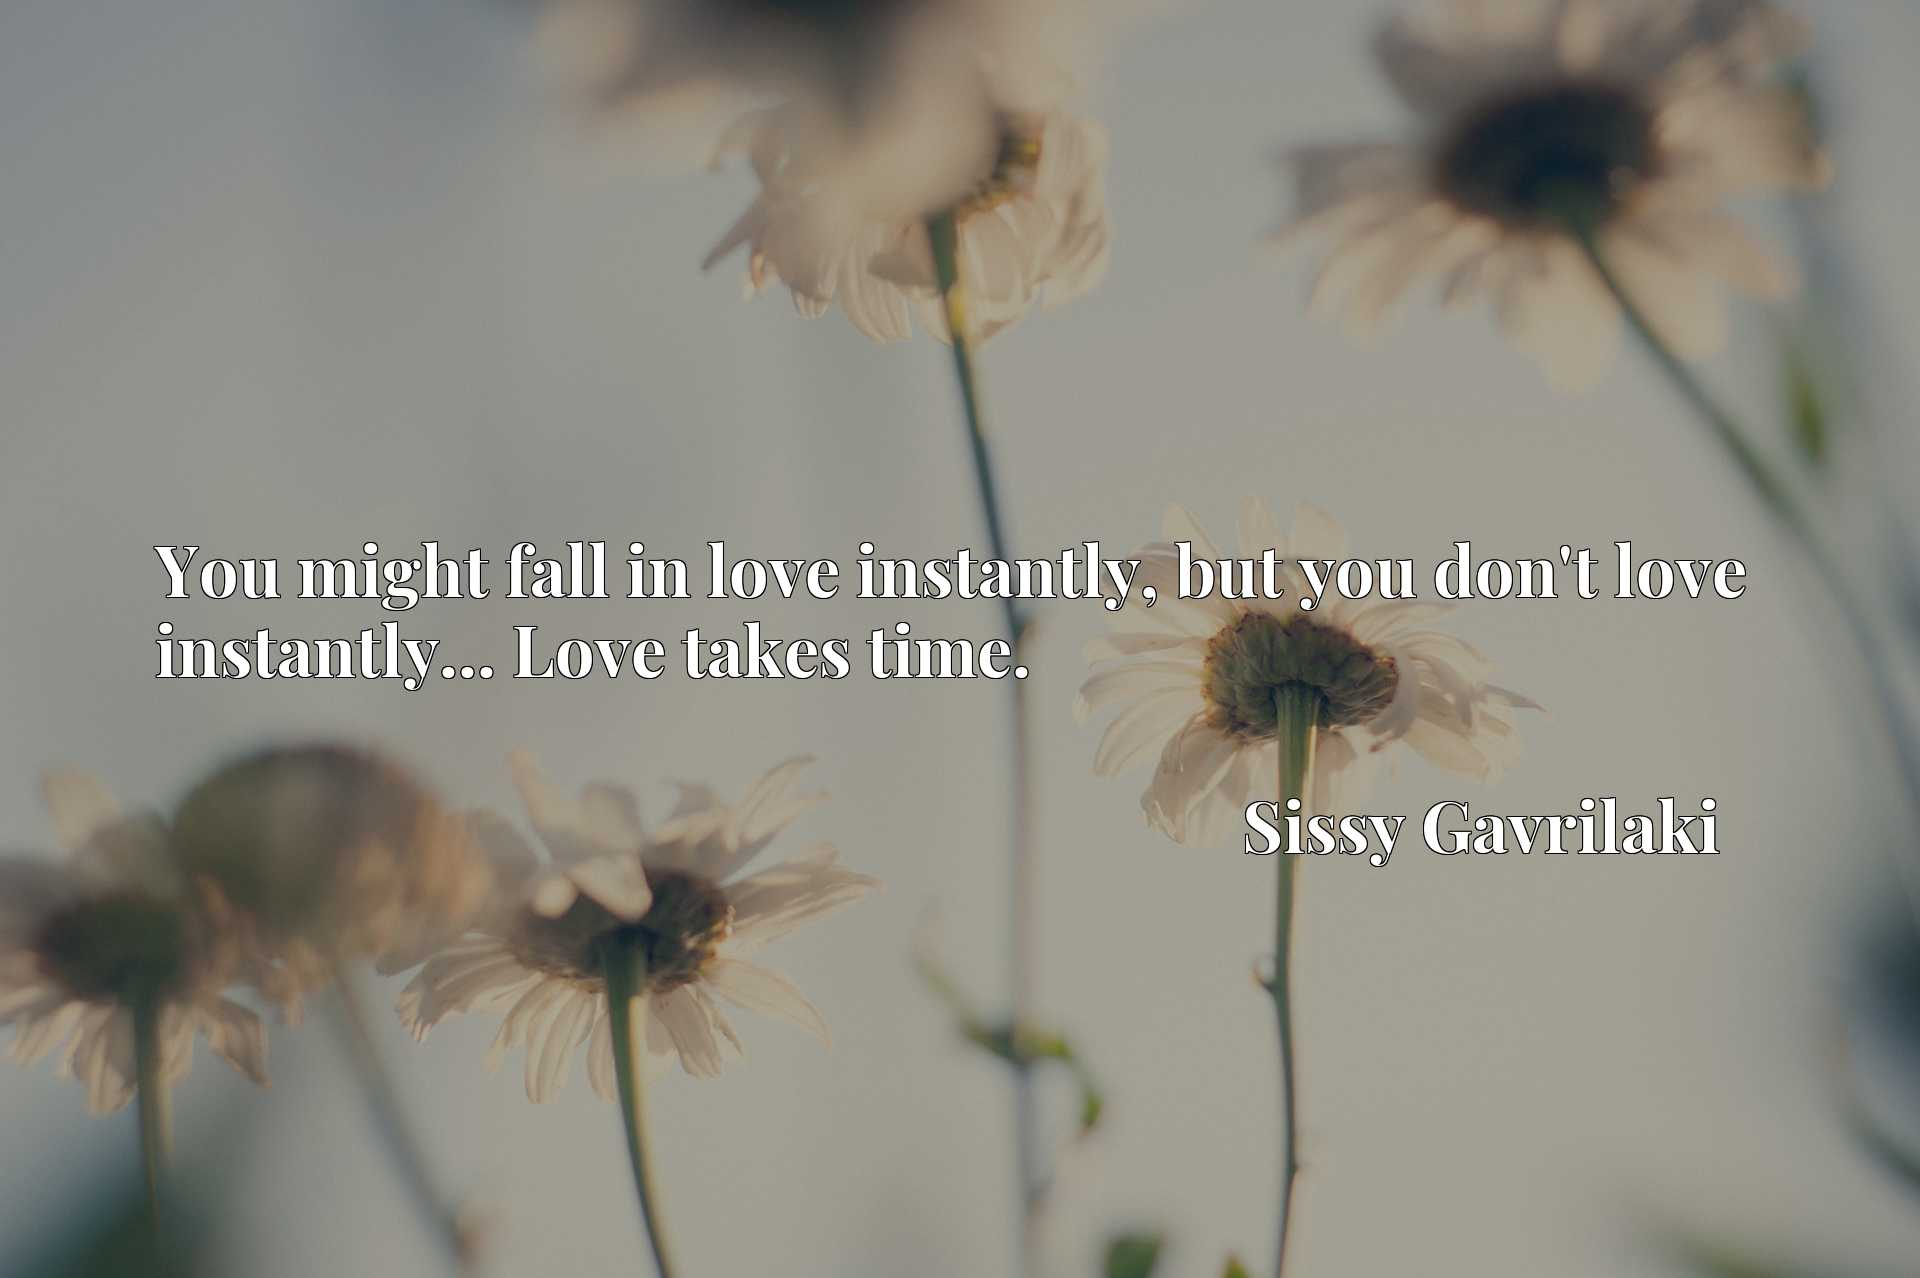 You might fall in love instantly, but you don't love instantly... Love takes time.